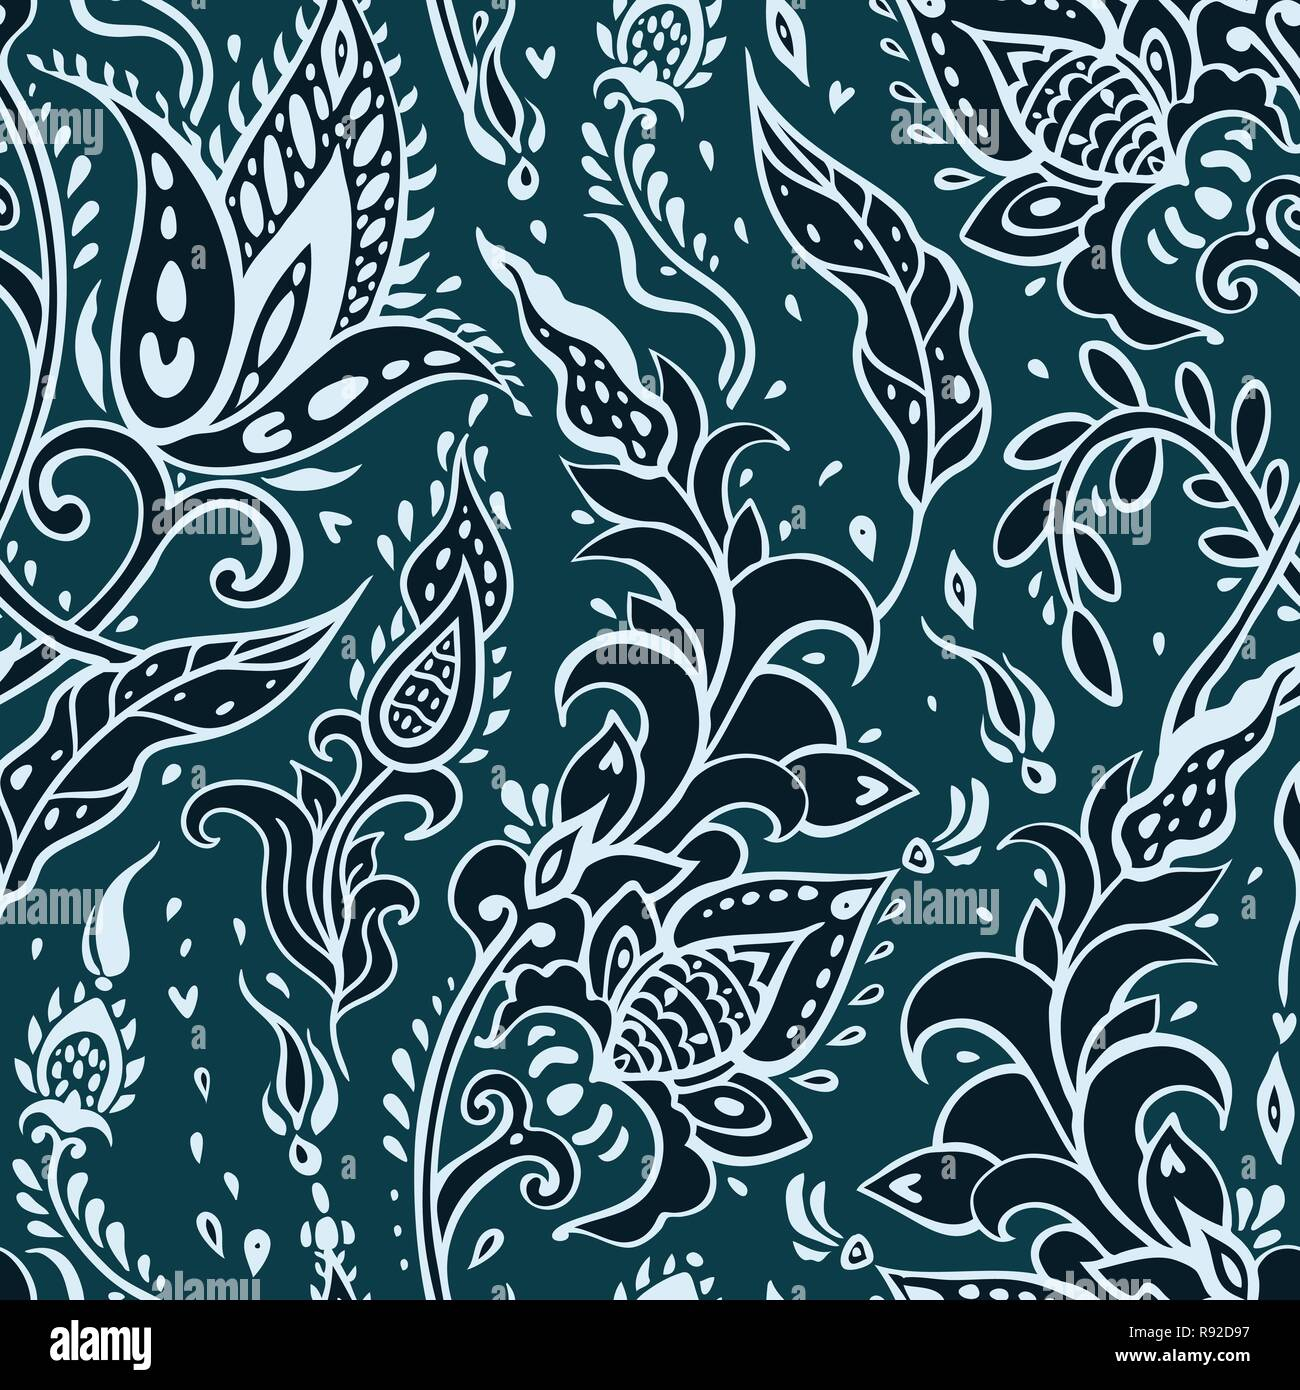 Paisley background. Vintage pattern with hand drawn Abstract Flowers. Seamless ornament. Can be used for wallpaper, website background, textile, phone